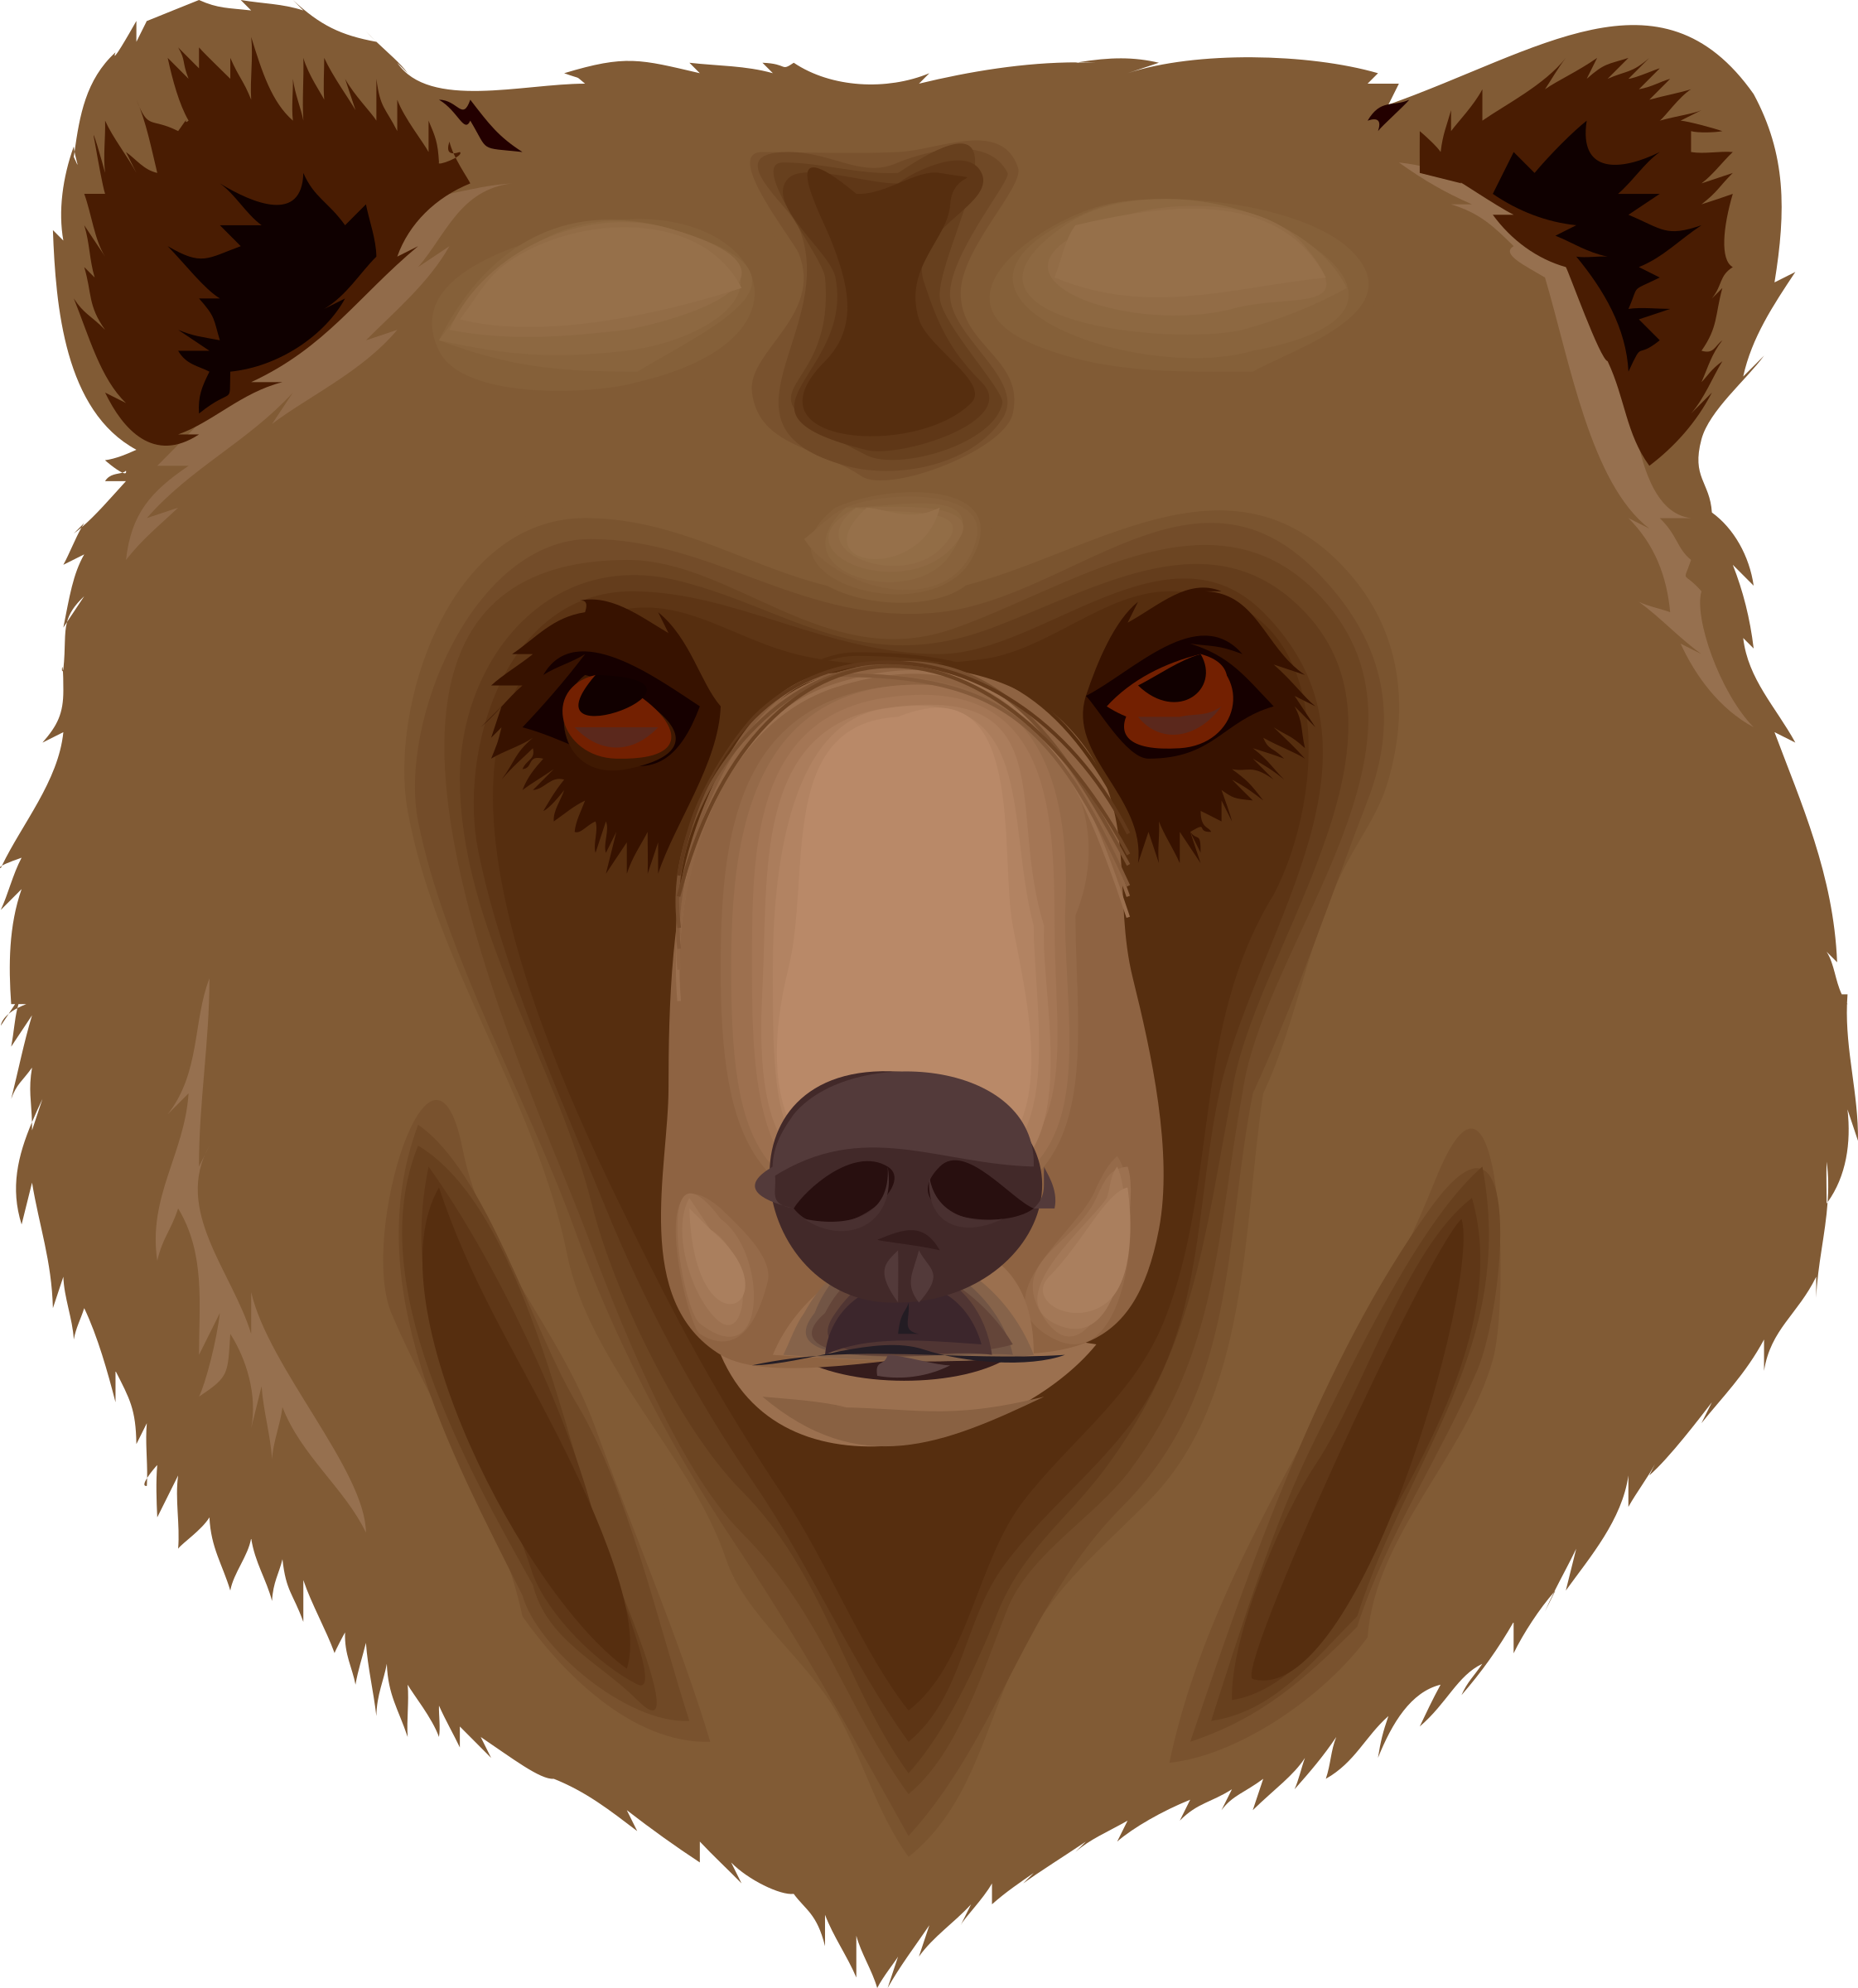 transparent download Architetto orso bear big. Grizzly clipart clip art